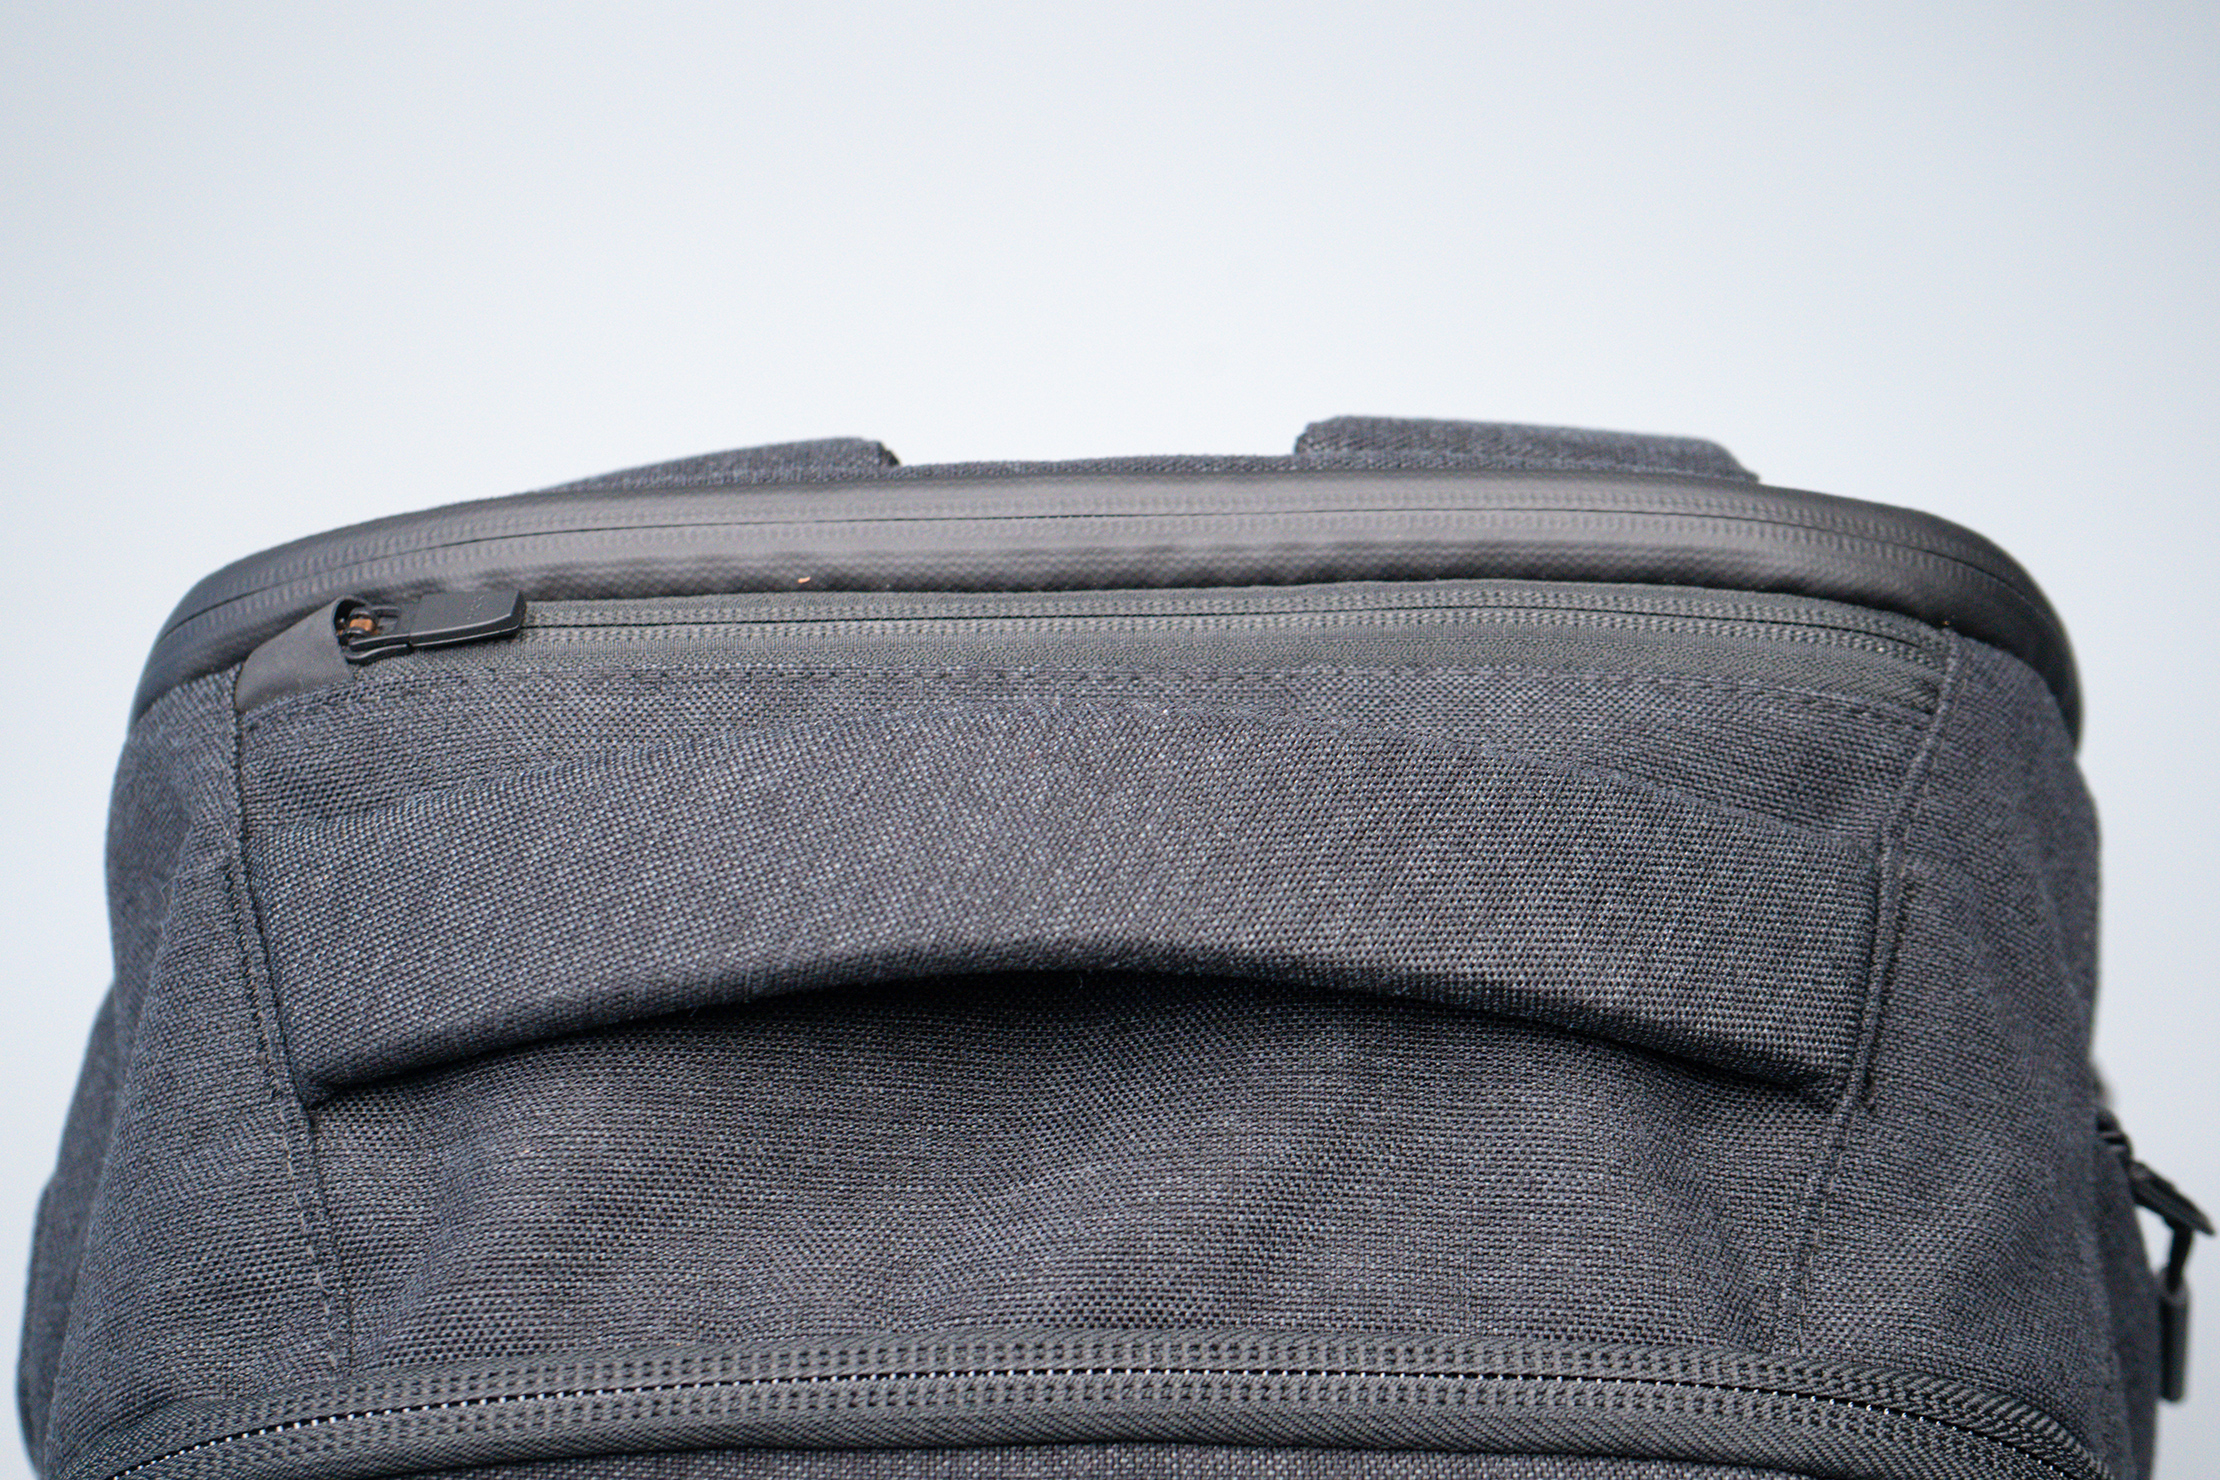 Aer x Ministry of Supply Lunar Pack Top Handle